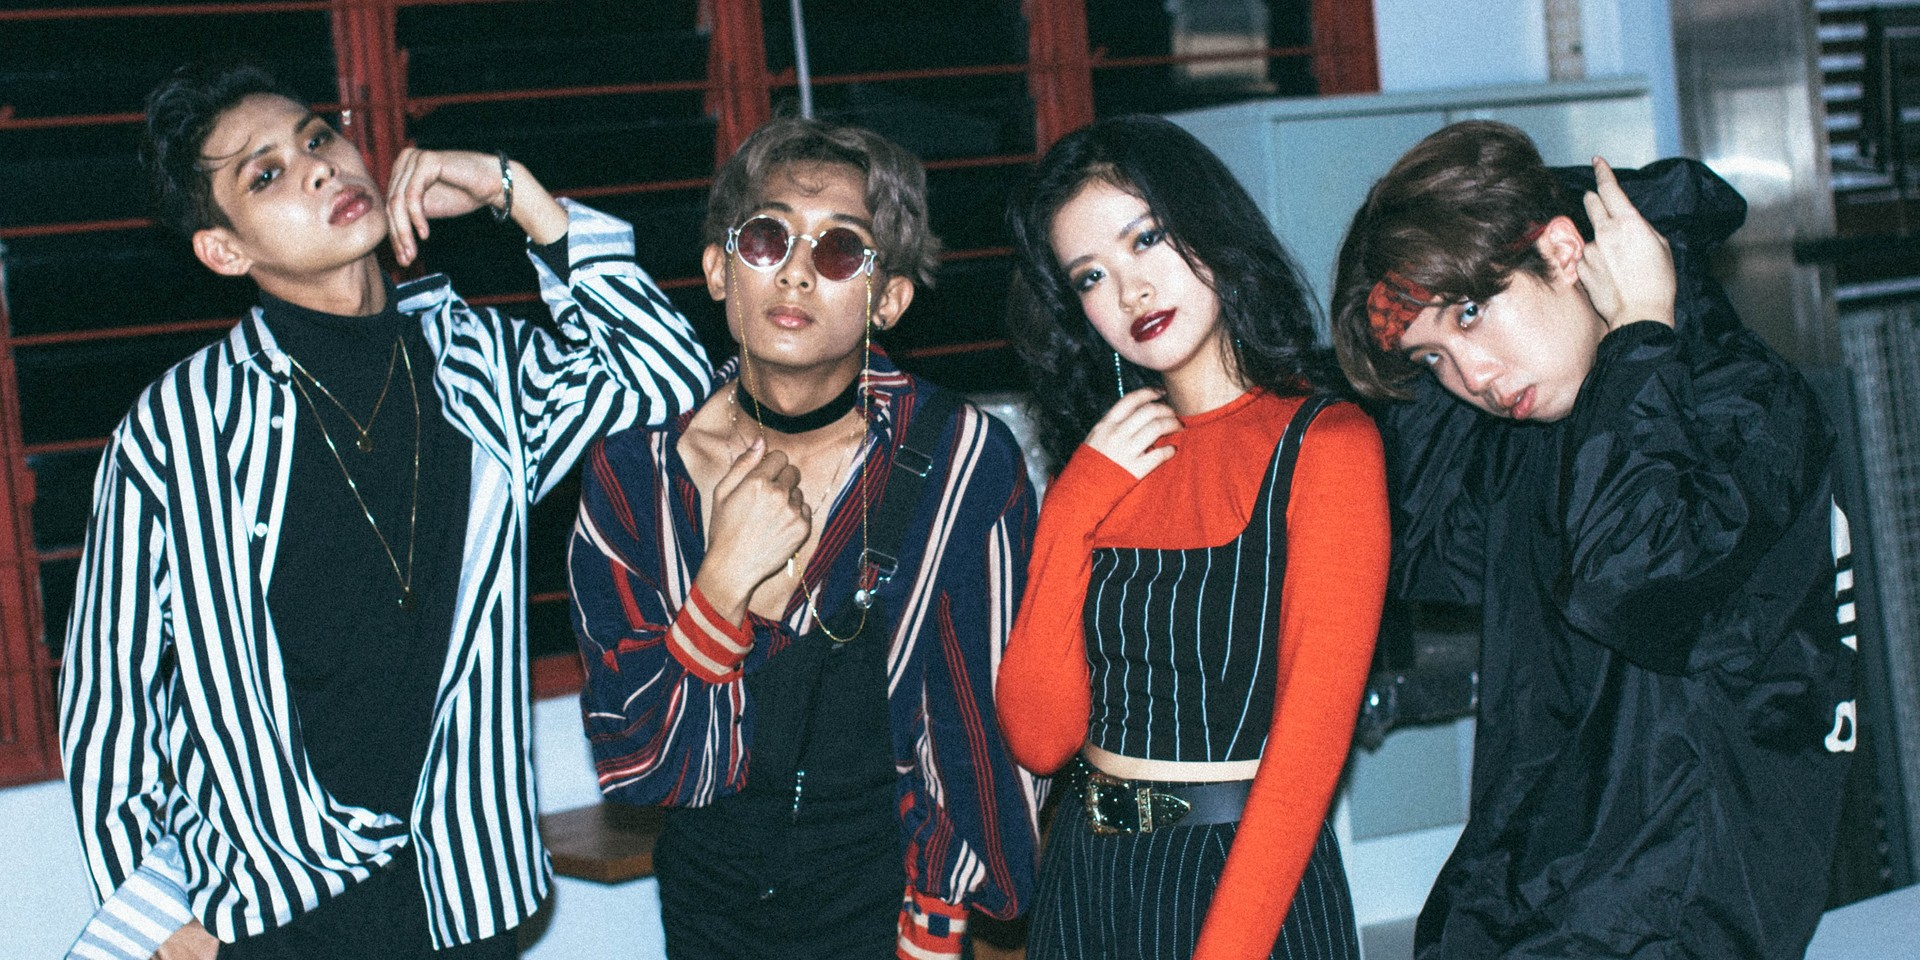 Disco Hue premieres retro music video for new single, 'Better Now' – watch